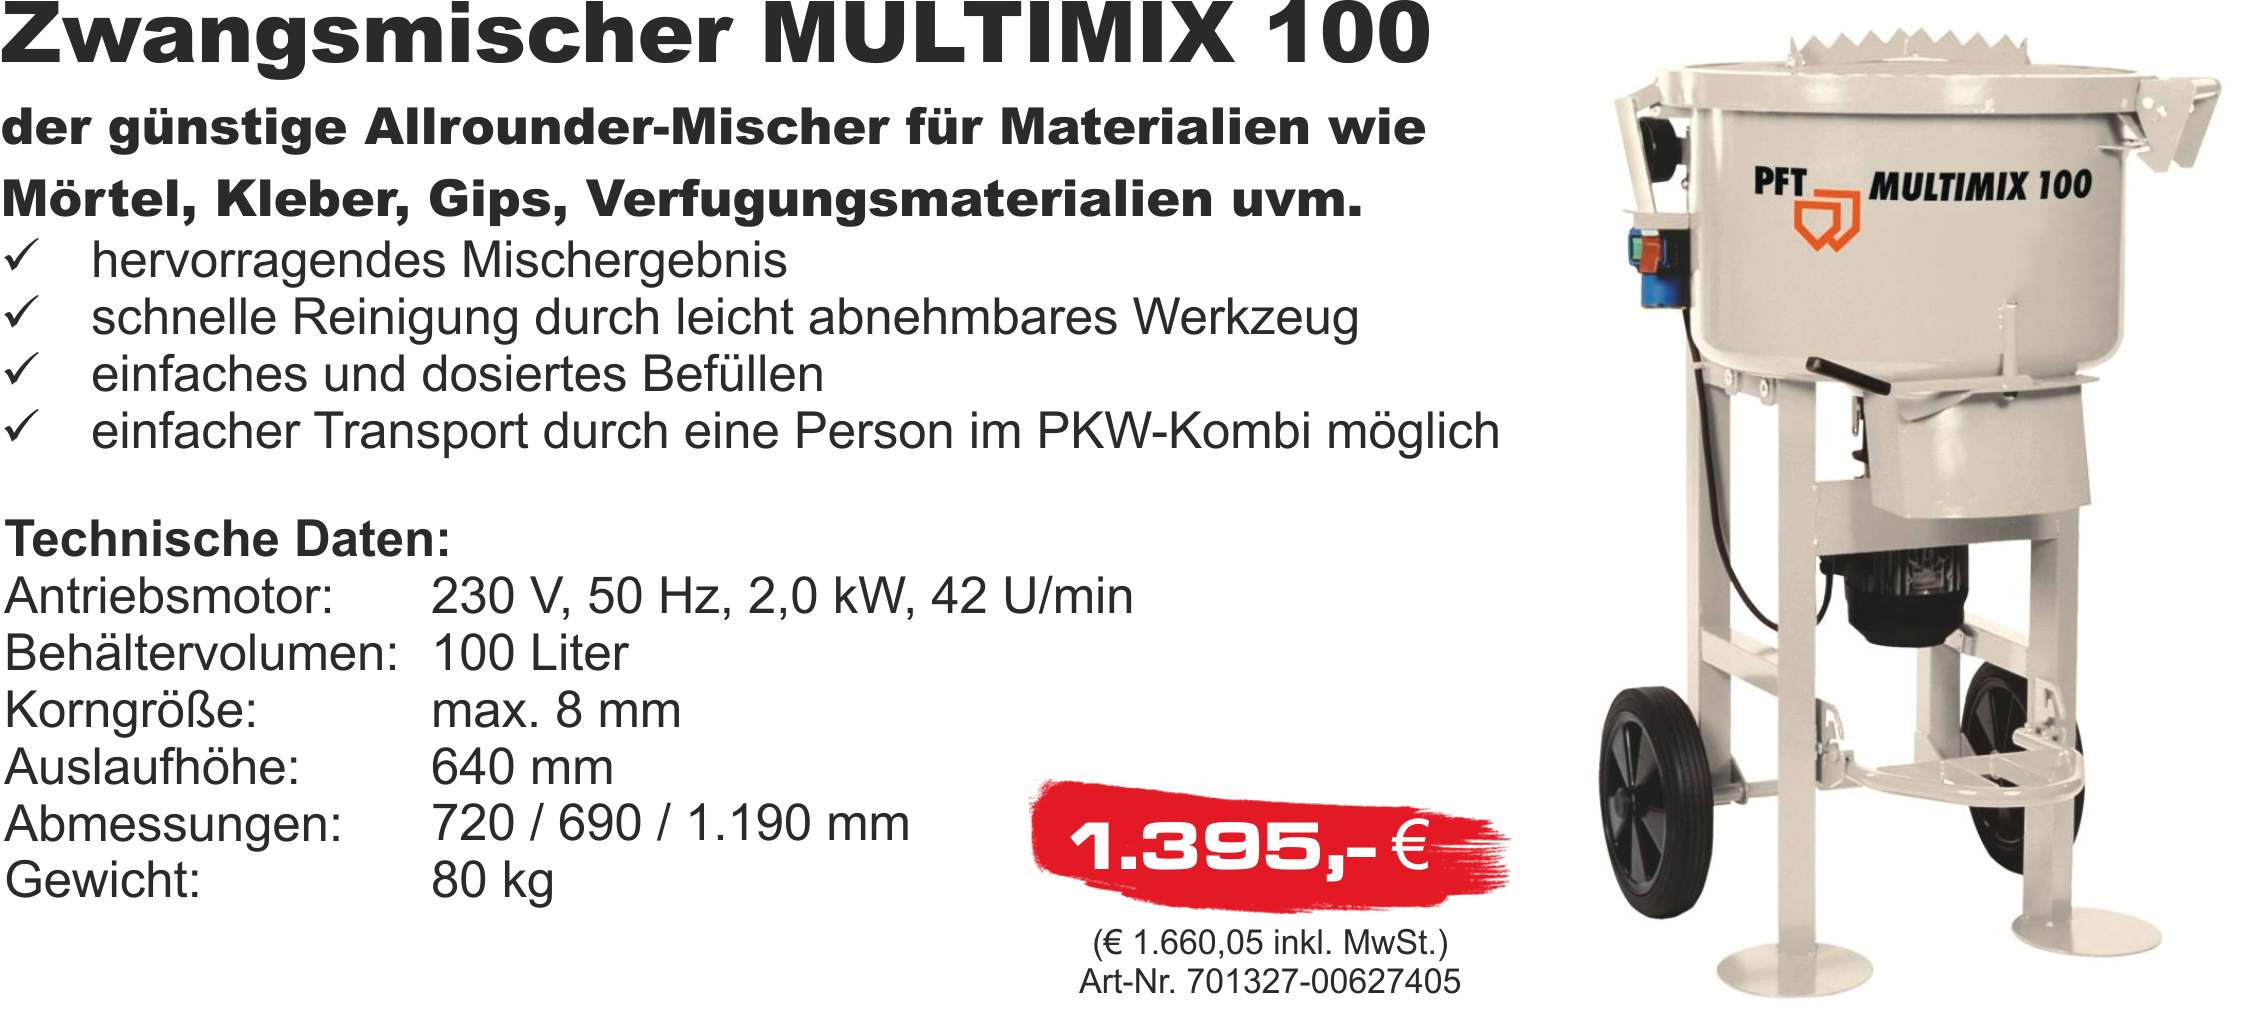 PFT Multimix 100